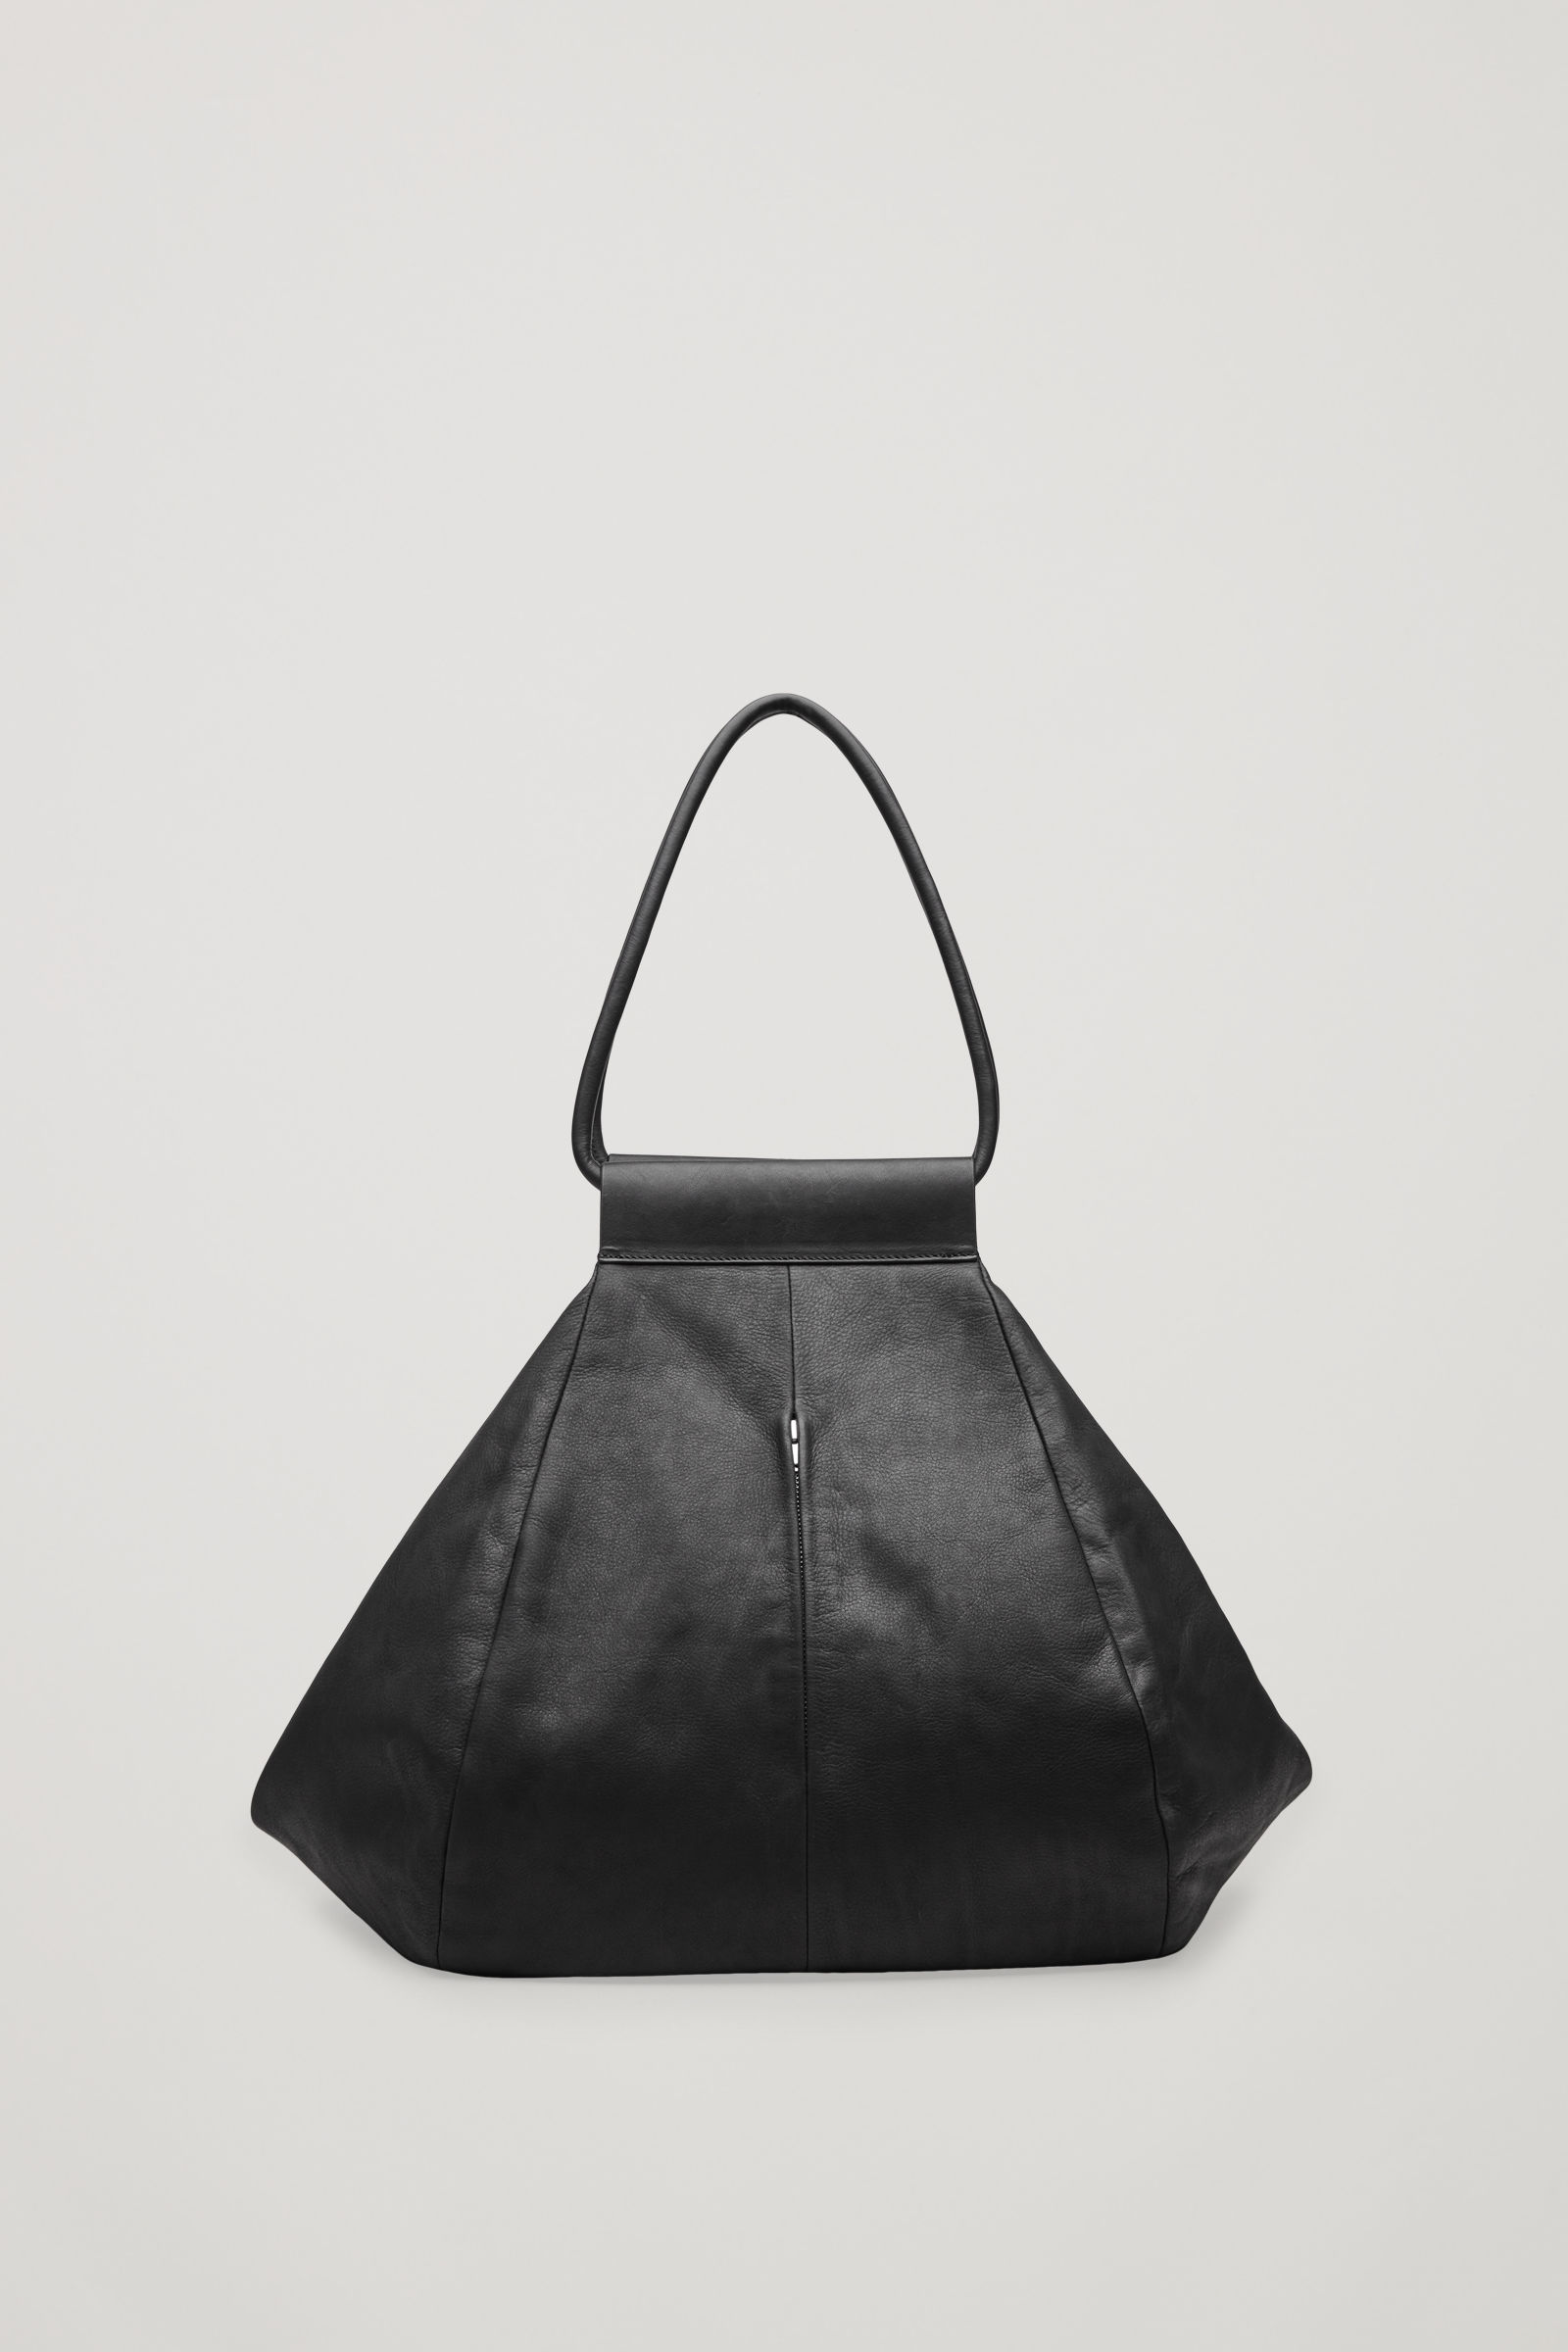 COS folded leather tote bag $285